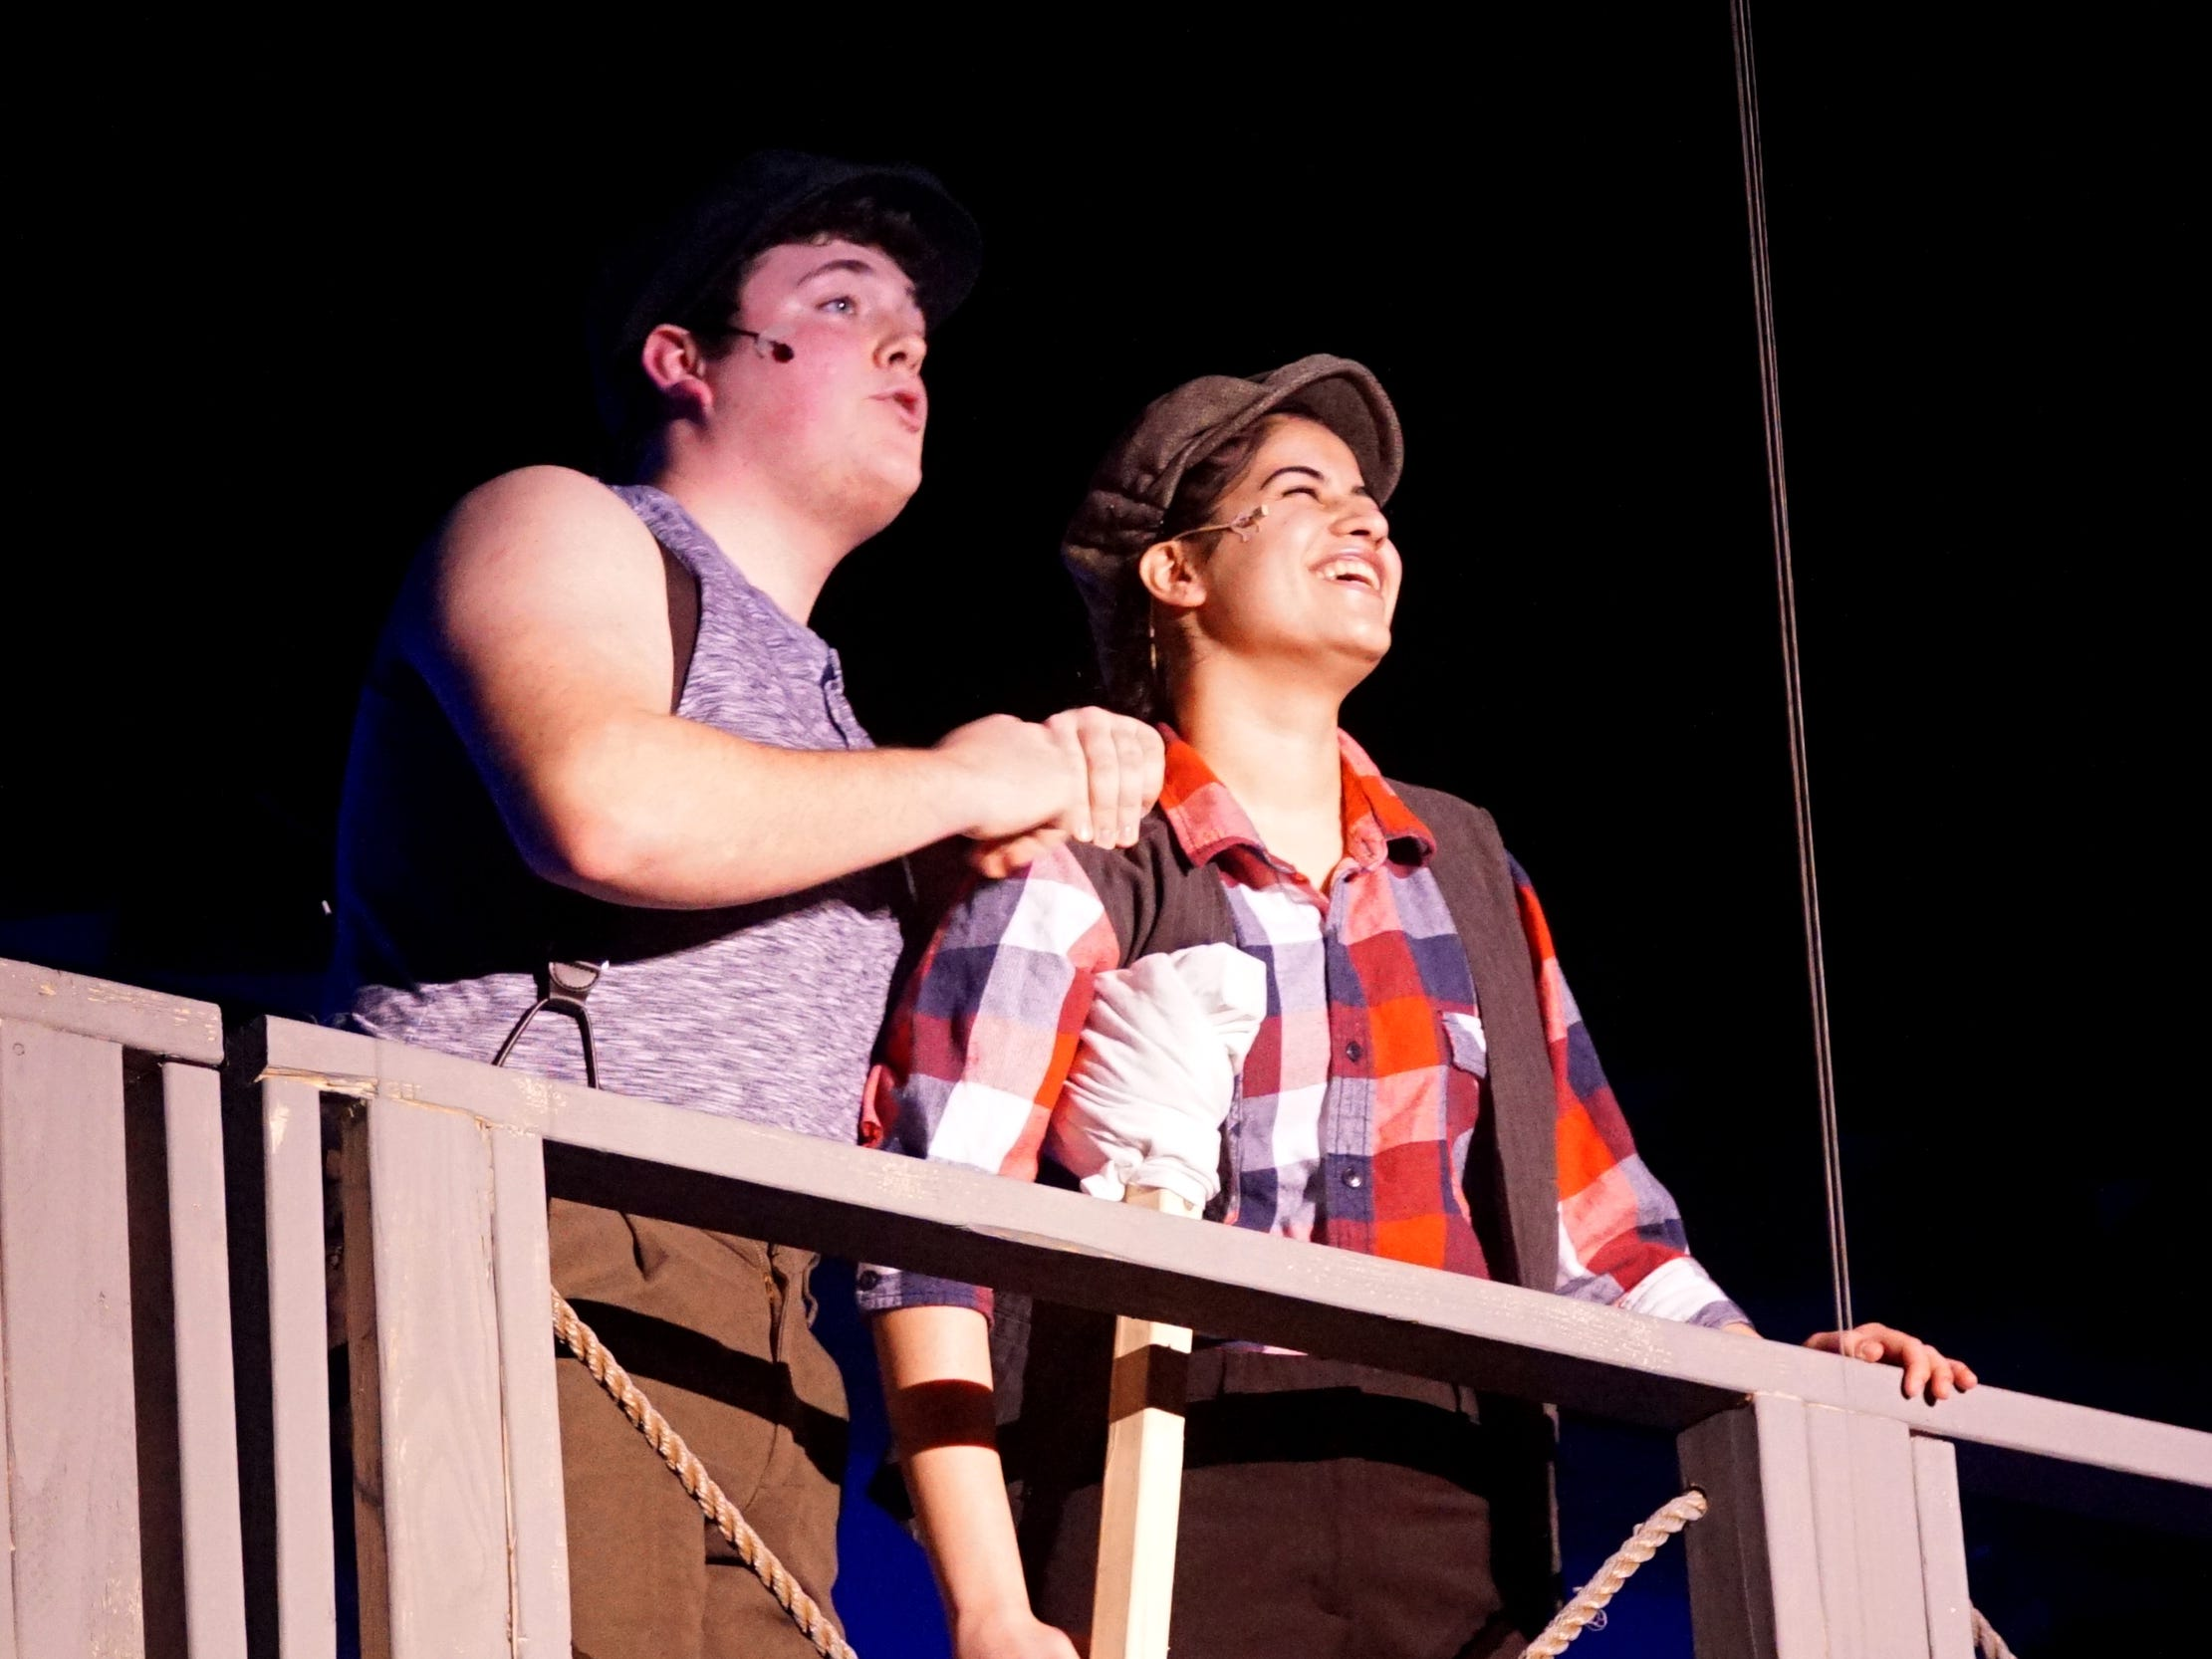 Jack Kelly (Ethan Langan), left, and Crutchy (Grace Ajo) rehearse a scene from the musical Newsies at Mercy High School in Farmington Hills on Feb. 25. The school will perform the play on March 8th and 9th at 7:30 p.m., and on March 10 at 2 p.m.